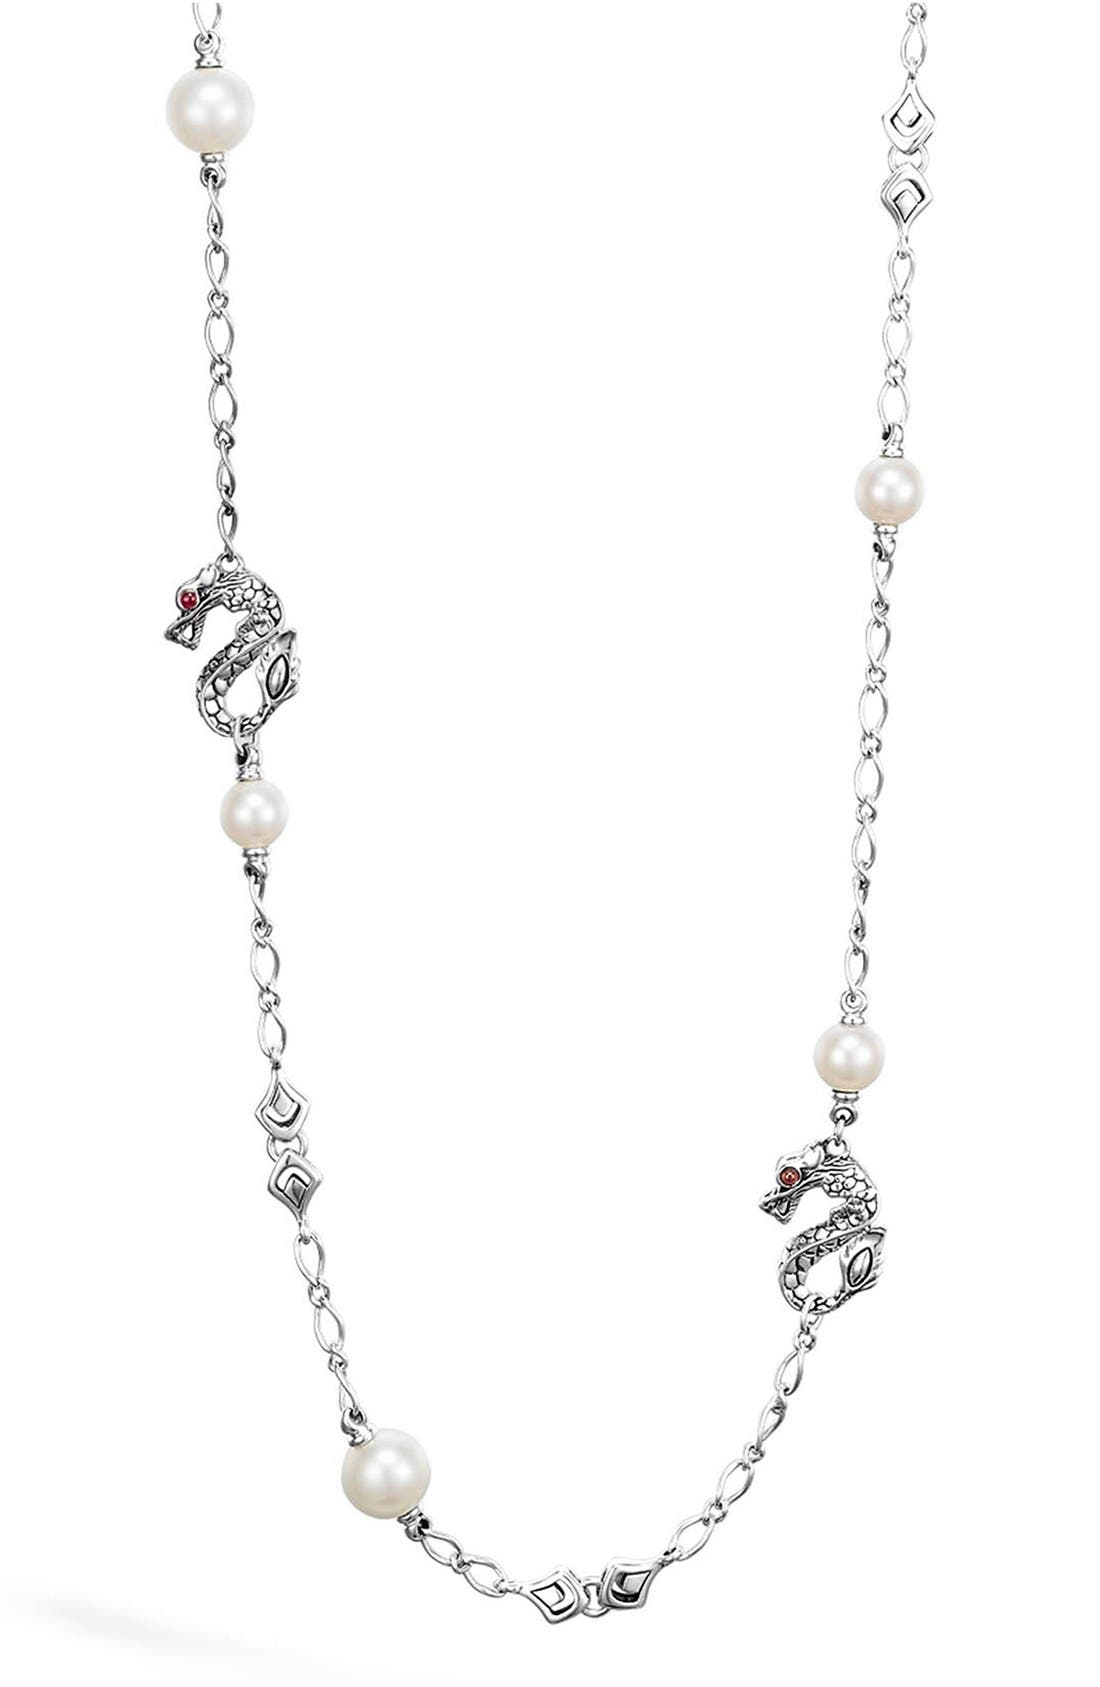 John Hardy 'Naga' Dragon & Pearl Station Necklace